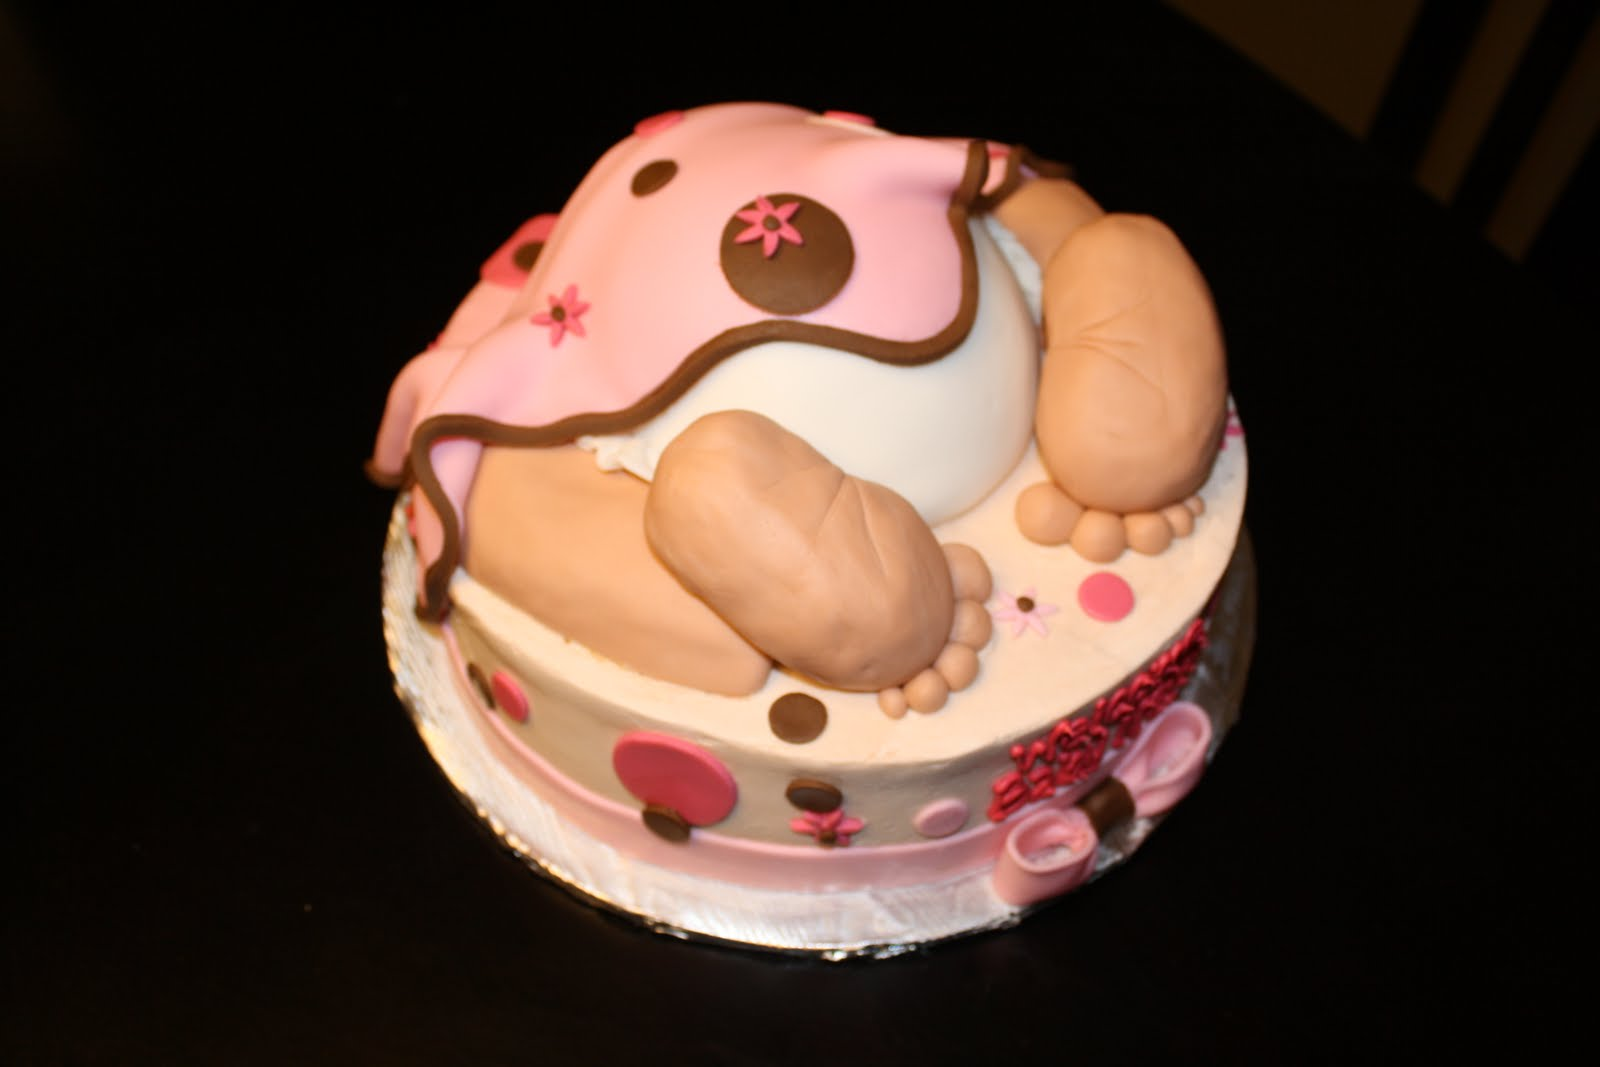 Baby Rump Cake Images : Hock Cakes LLC: Baby Rump: Girl; off white, pink, and brown